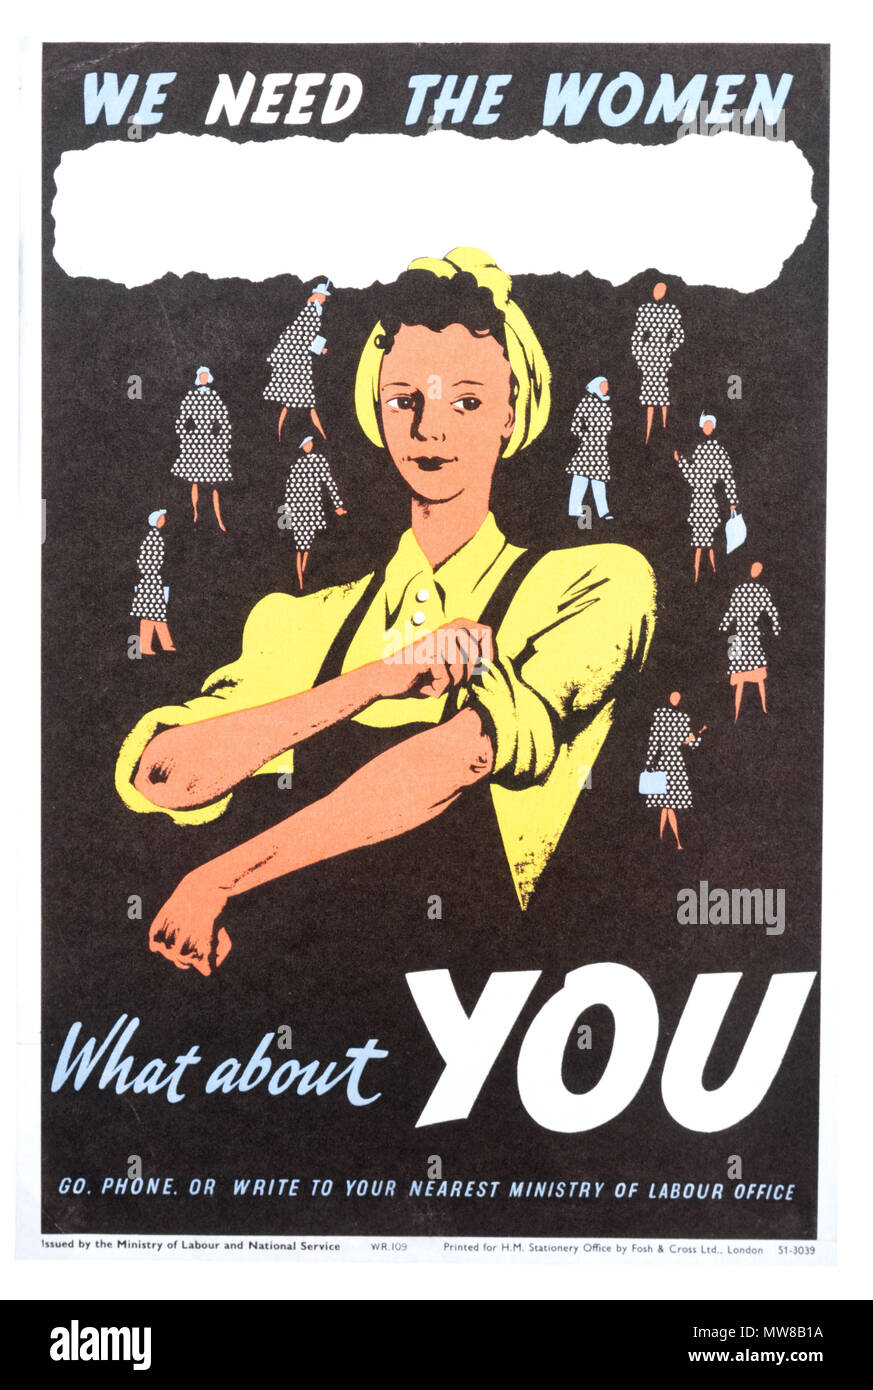 A Second World War poster calling on women to join in labour force - Stock Image